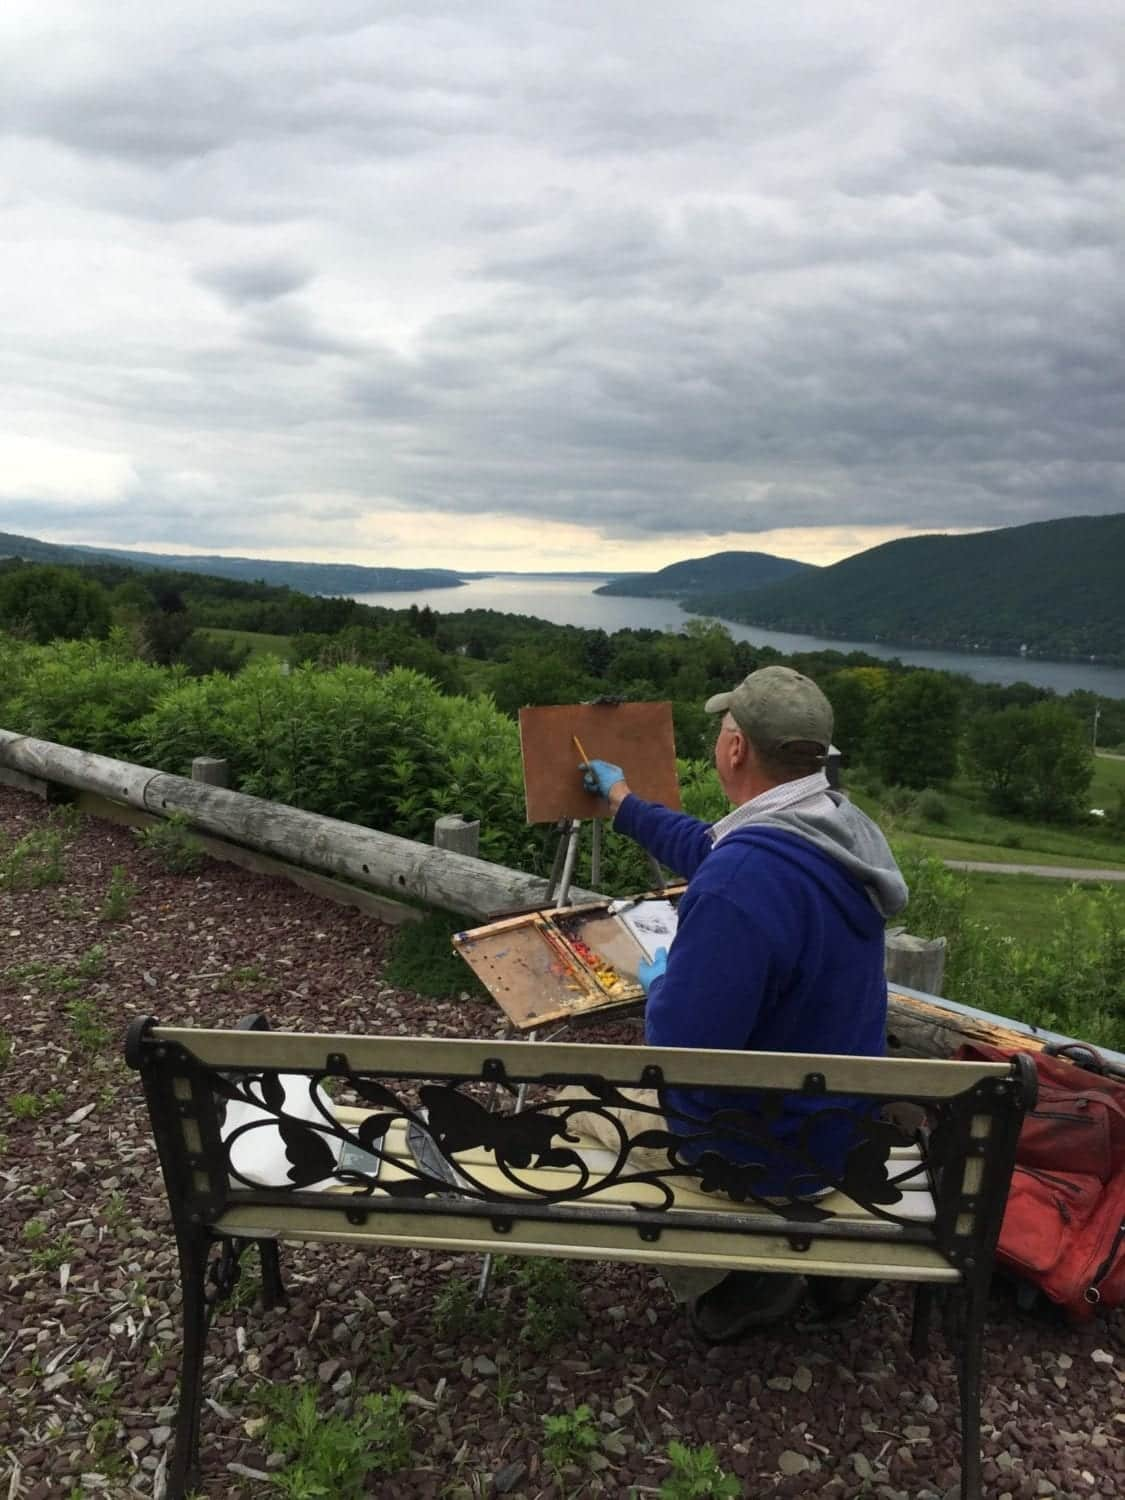 An artist painting plein air... sitting on a bench overlooking Canandaigua Lake on a moody day. This is part of the Plein Air Festival held annually in Canandaigua, Ontario County, NY